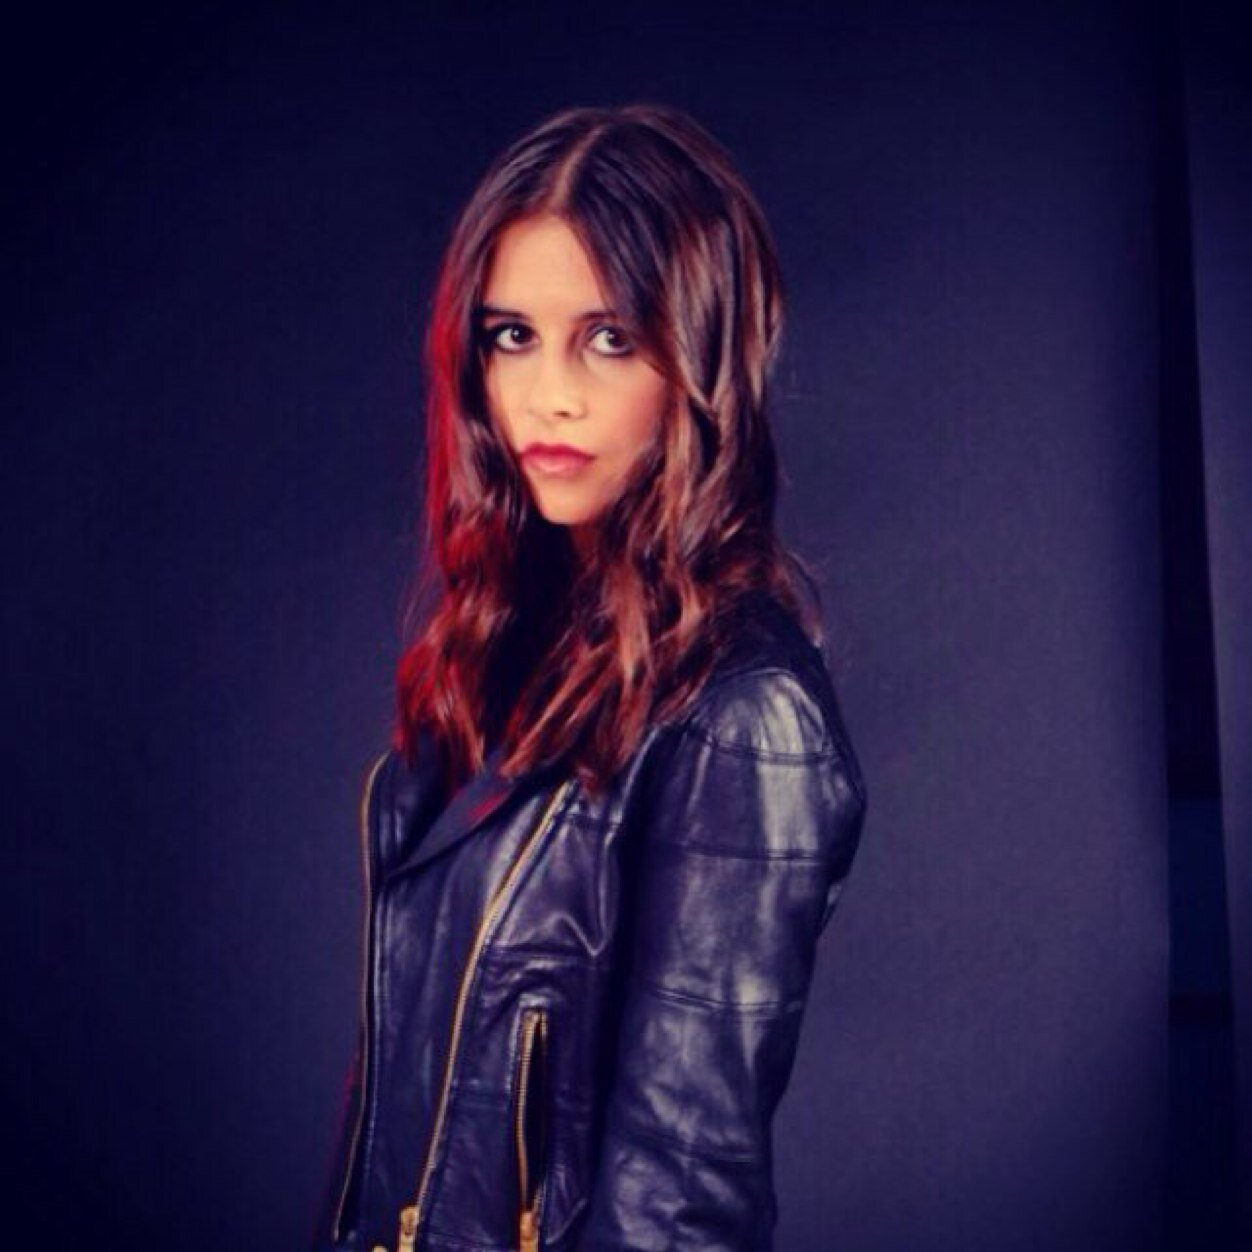 carly rose sonenclar record deal - HD1252×1252